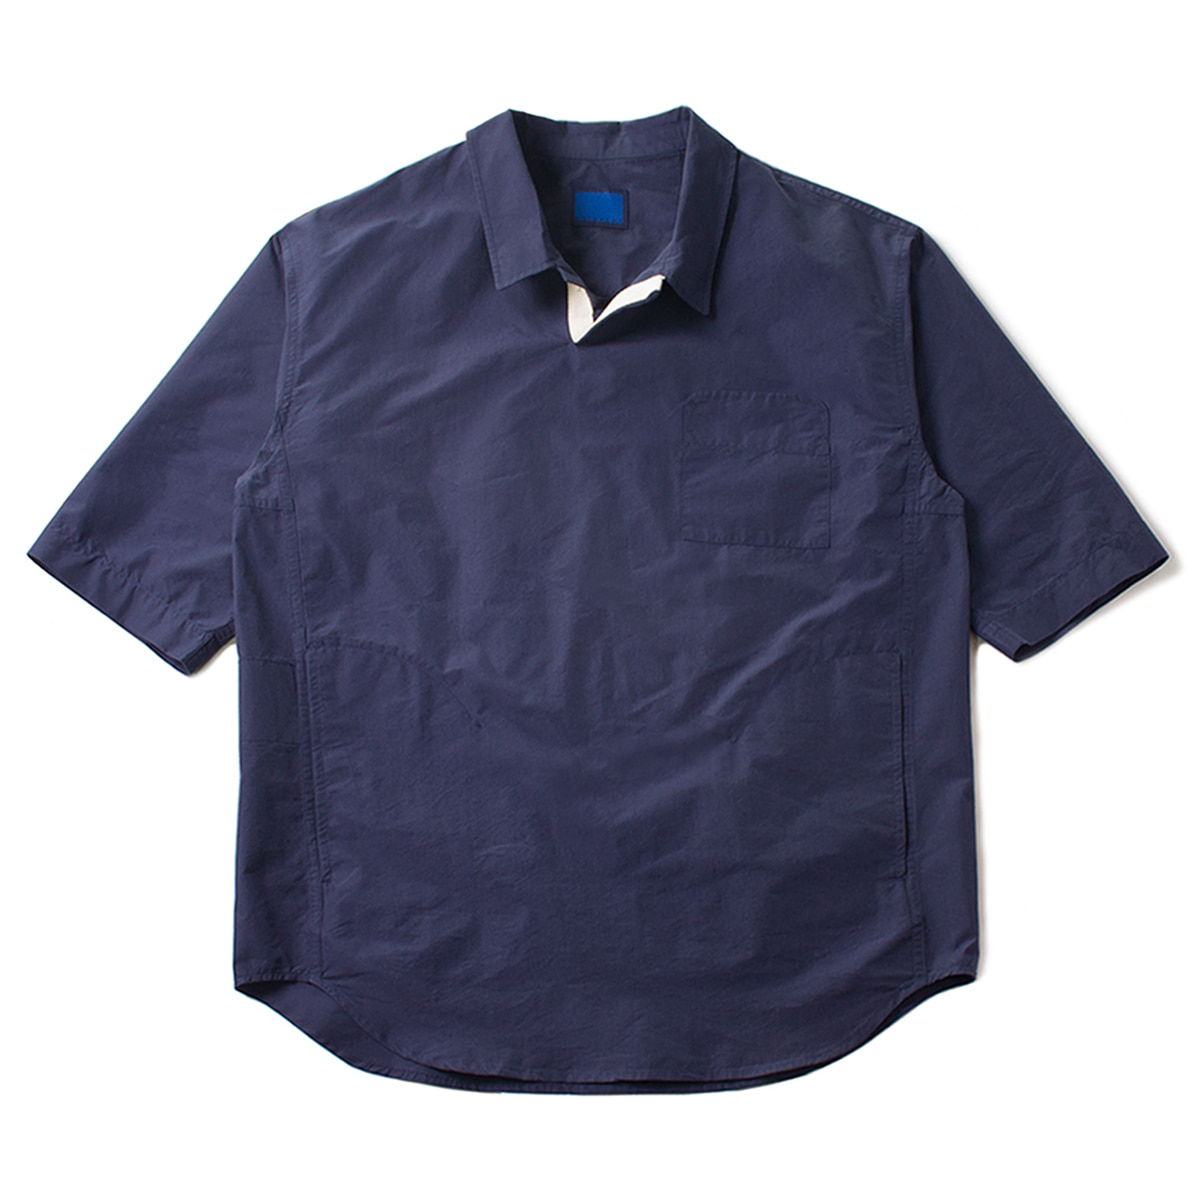 [DOCUMENT] M145 DOCUMENT POLO SHIRT 'NAVY'